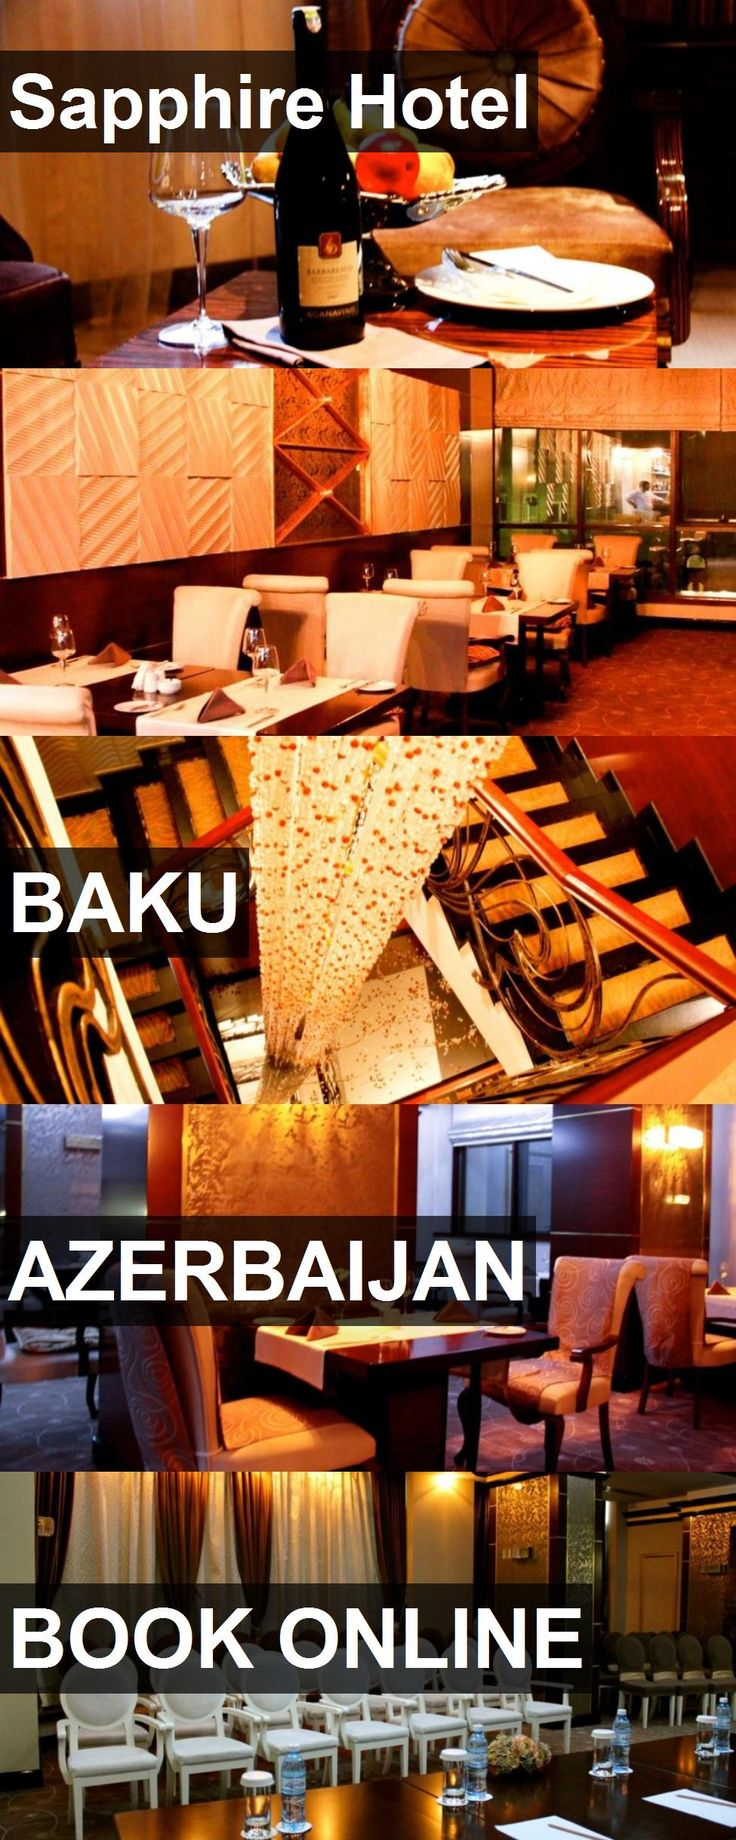 Hotel Sapphire Hotel in Baku, Azerbaijan. For more information, photos, reviews and best prices please follow the link. #Azerbaijan #Baku #hotel #travel #vacation